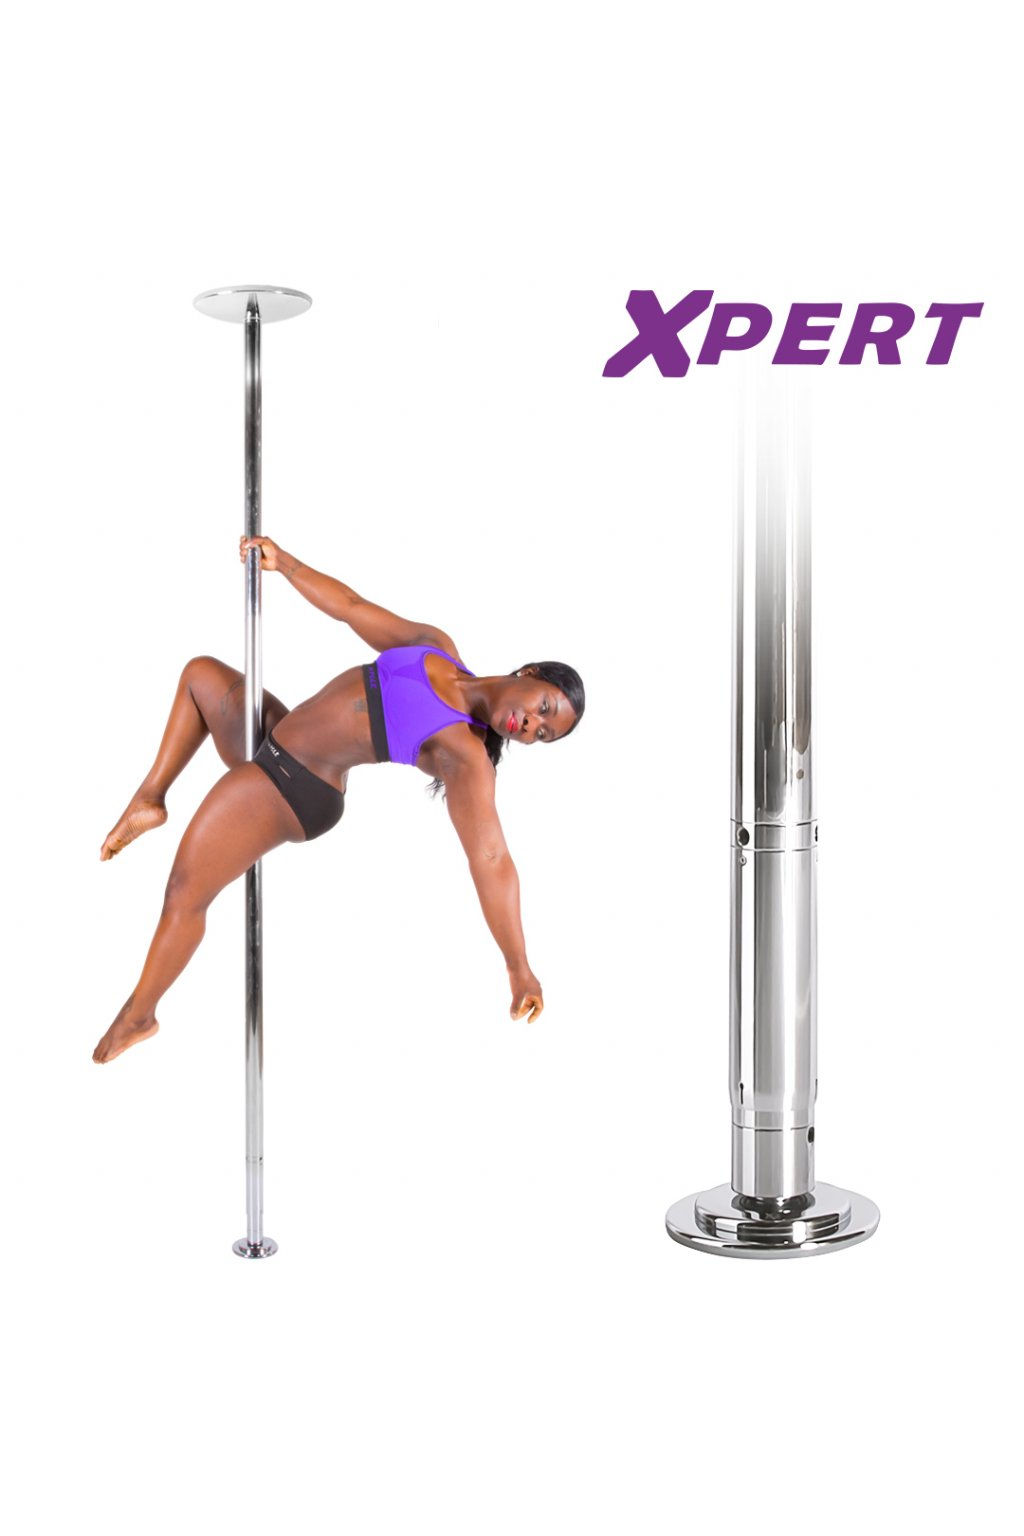 Joe Xpert chrome pole set with new upper dome